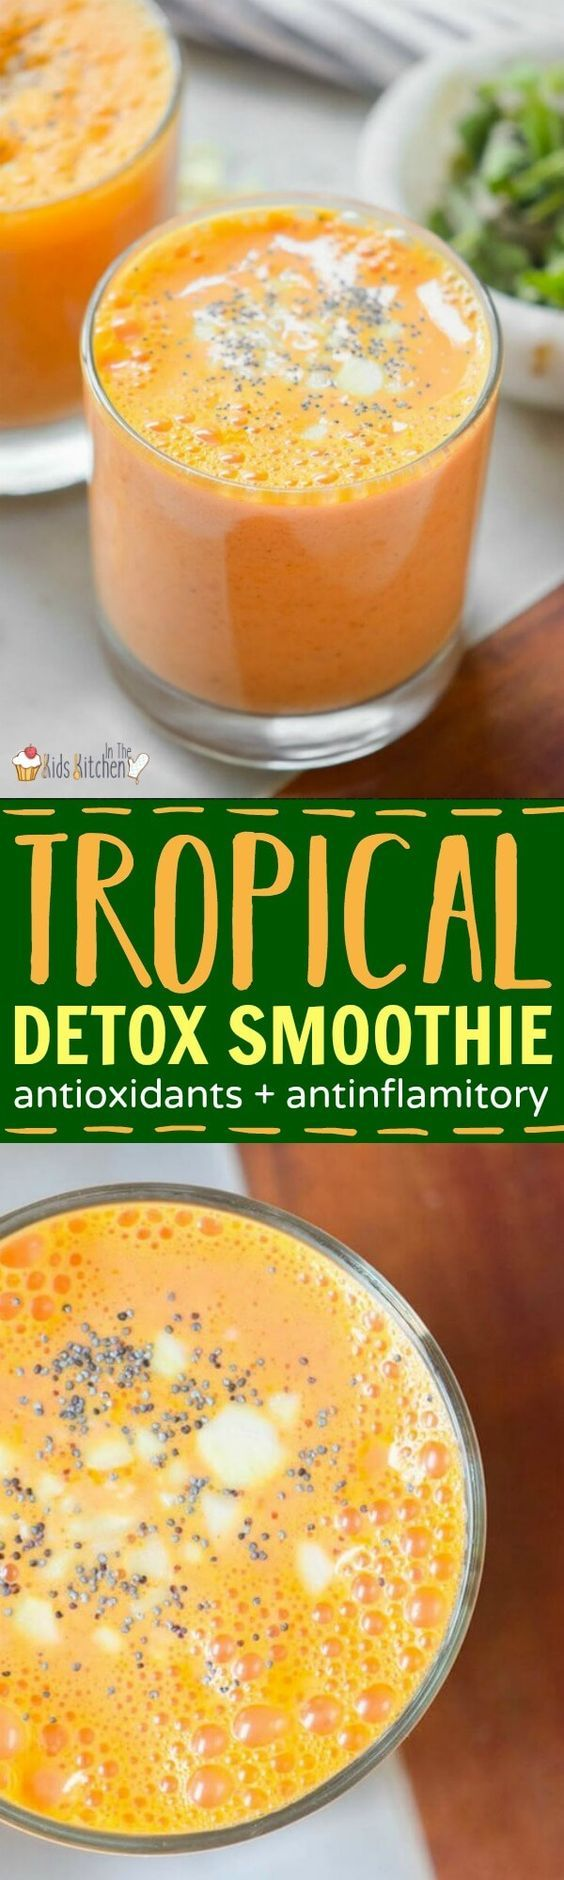 This vibrant tropical detox smoothie is the perfect energy boost for busy moms or a tasty way to sneak a little extra nutrition in your kids' day.